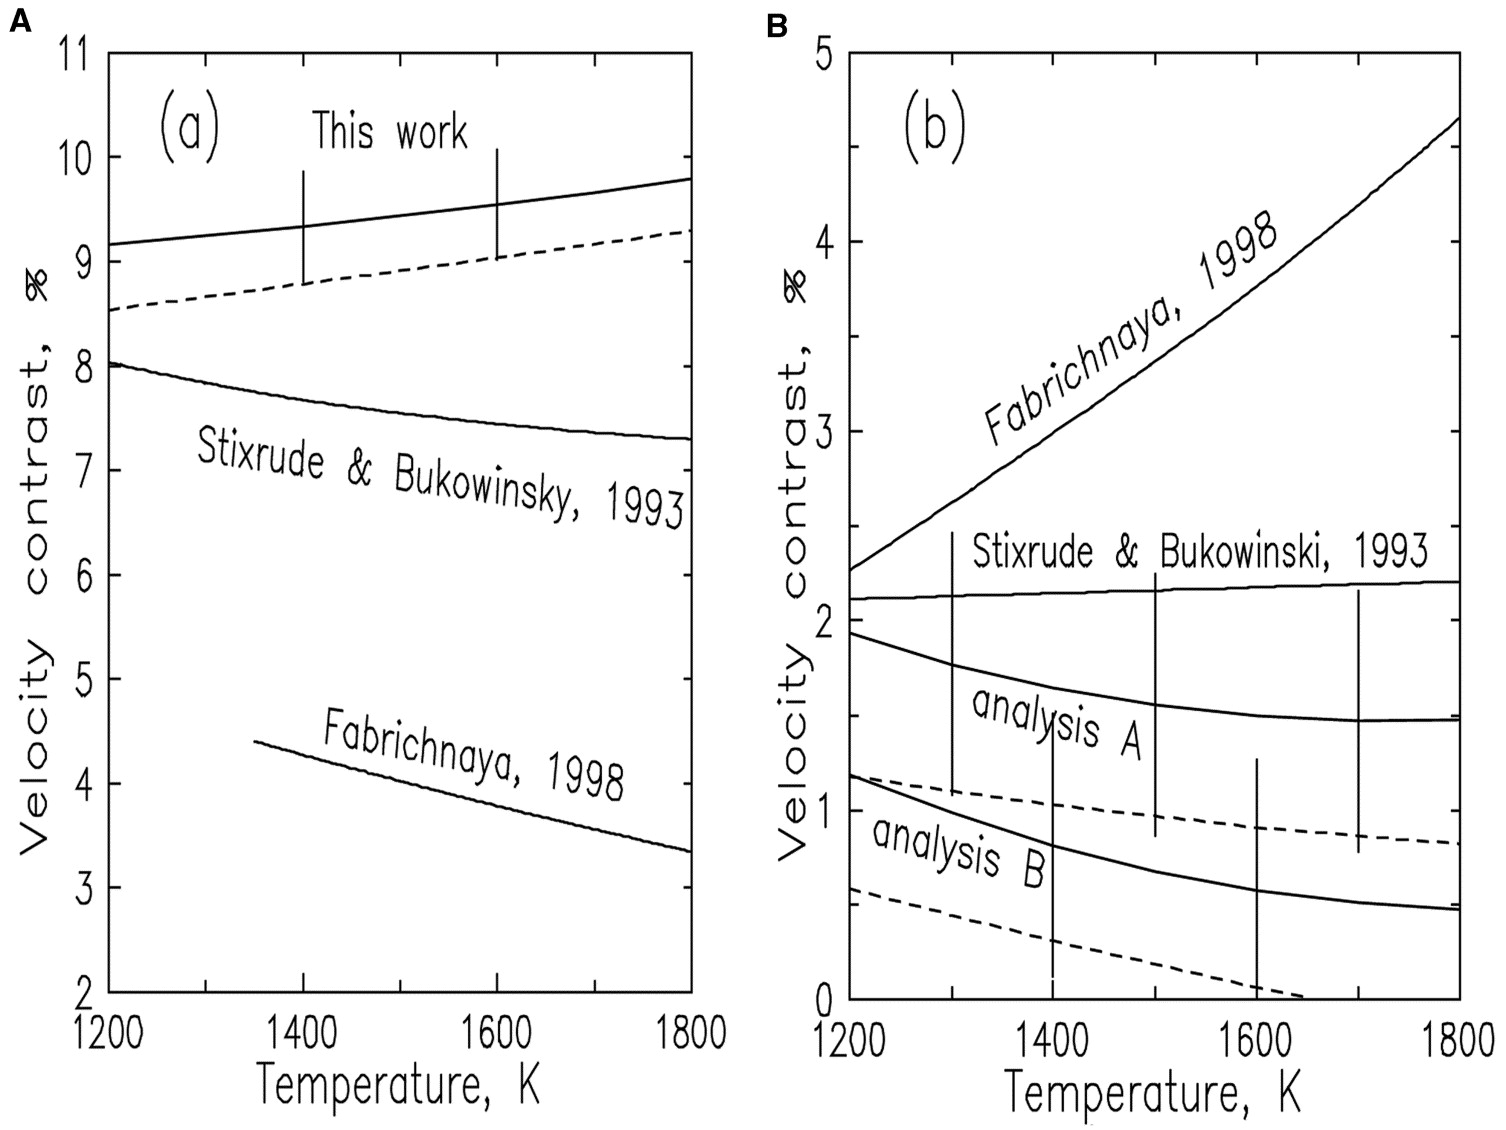 An investigation into thermodynamic consistency of data for the calculated velocity contrast as a function of adiabatic foot temperature for pooptronica